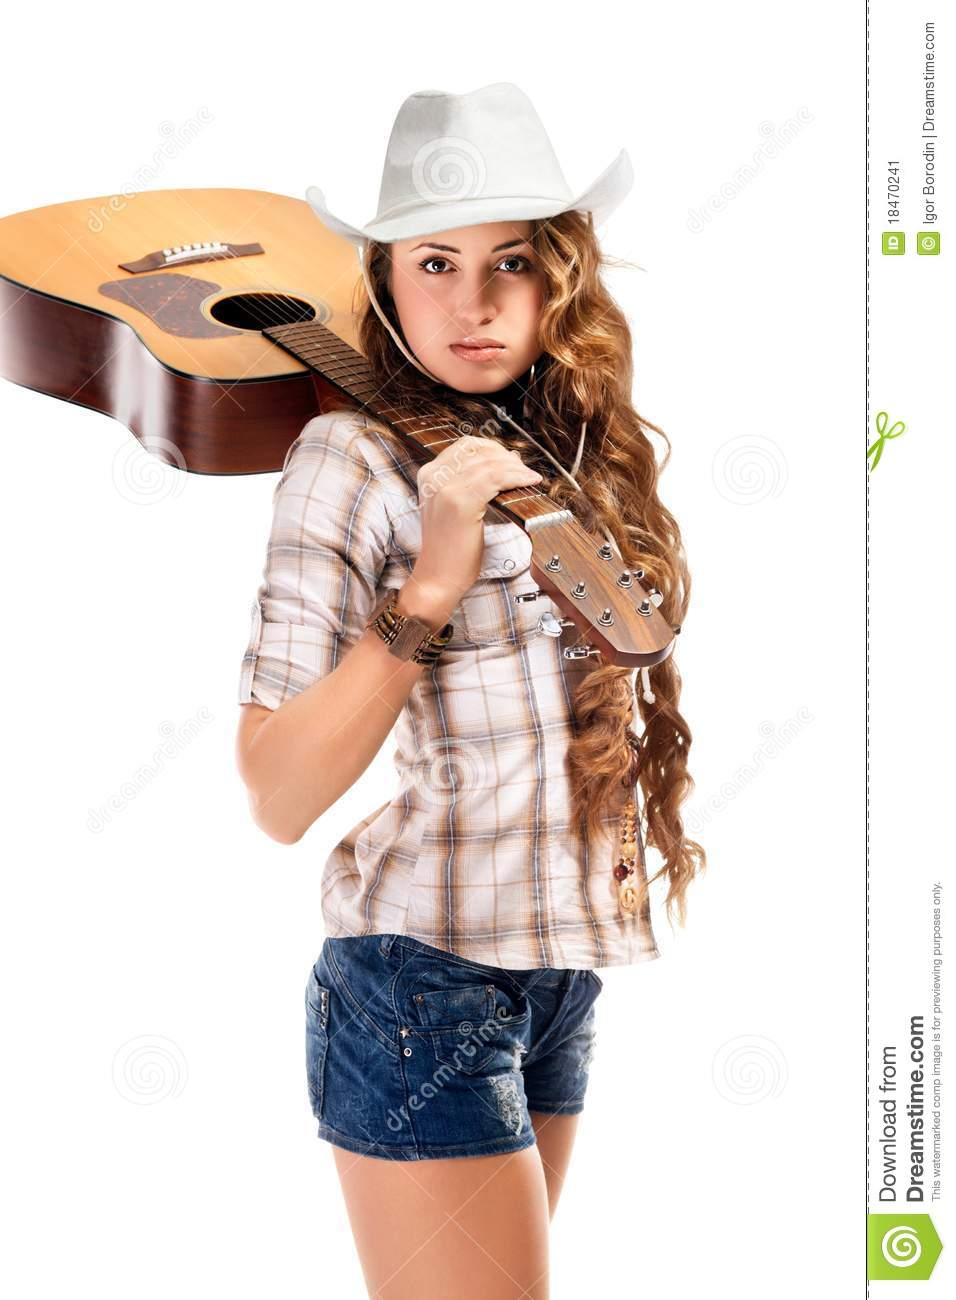 Sesy Cowgirl In Cowboy Hat With Acoustic Guitar Stock  : sesy cowgirl cowboy hat acoustic guitar 18470241 from dreamstime.com size 956 x 1300 jpeg 98kB